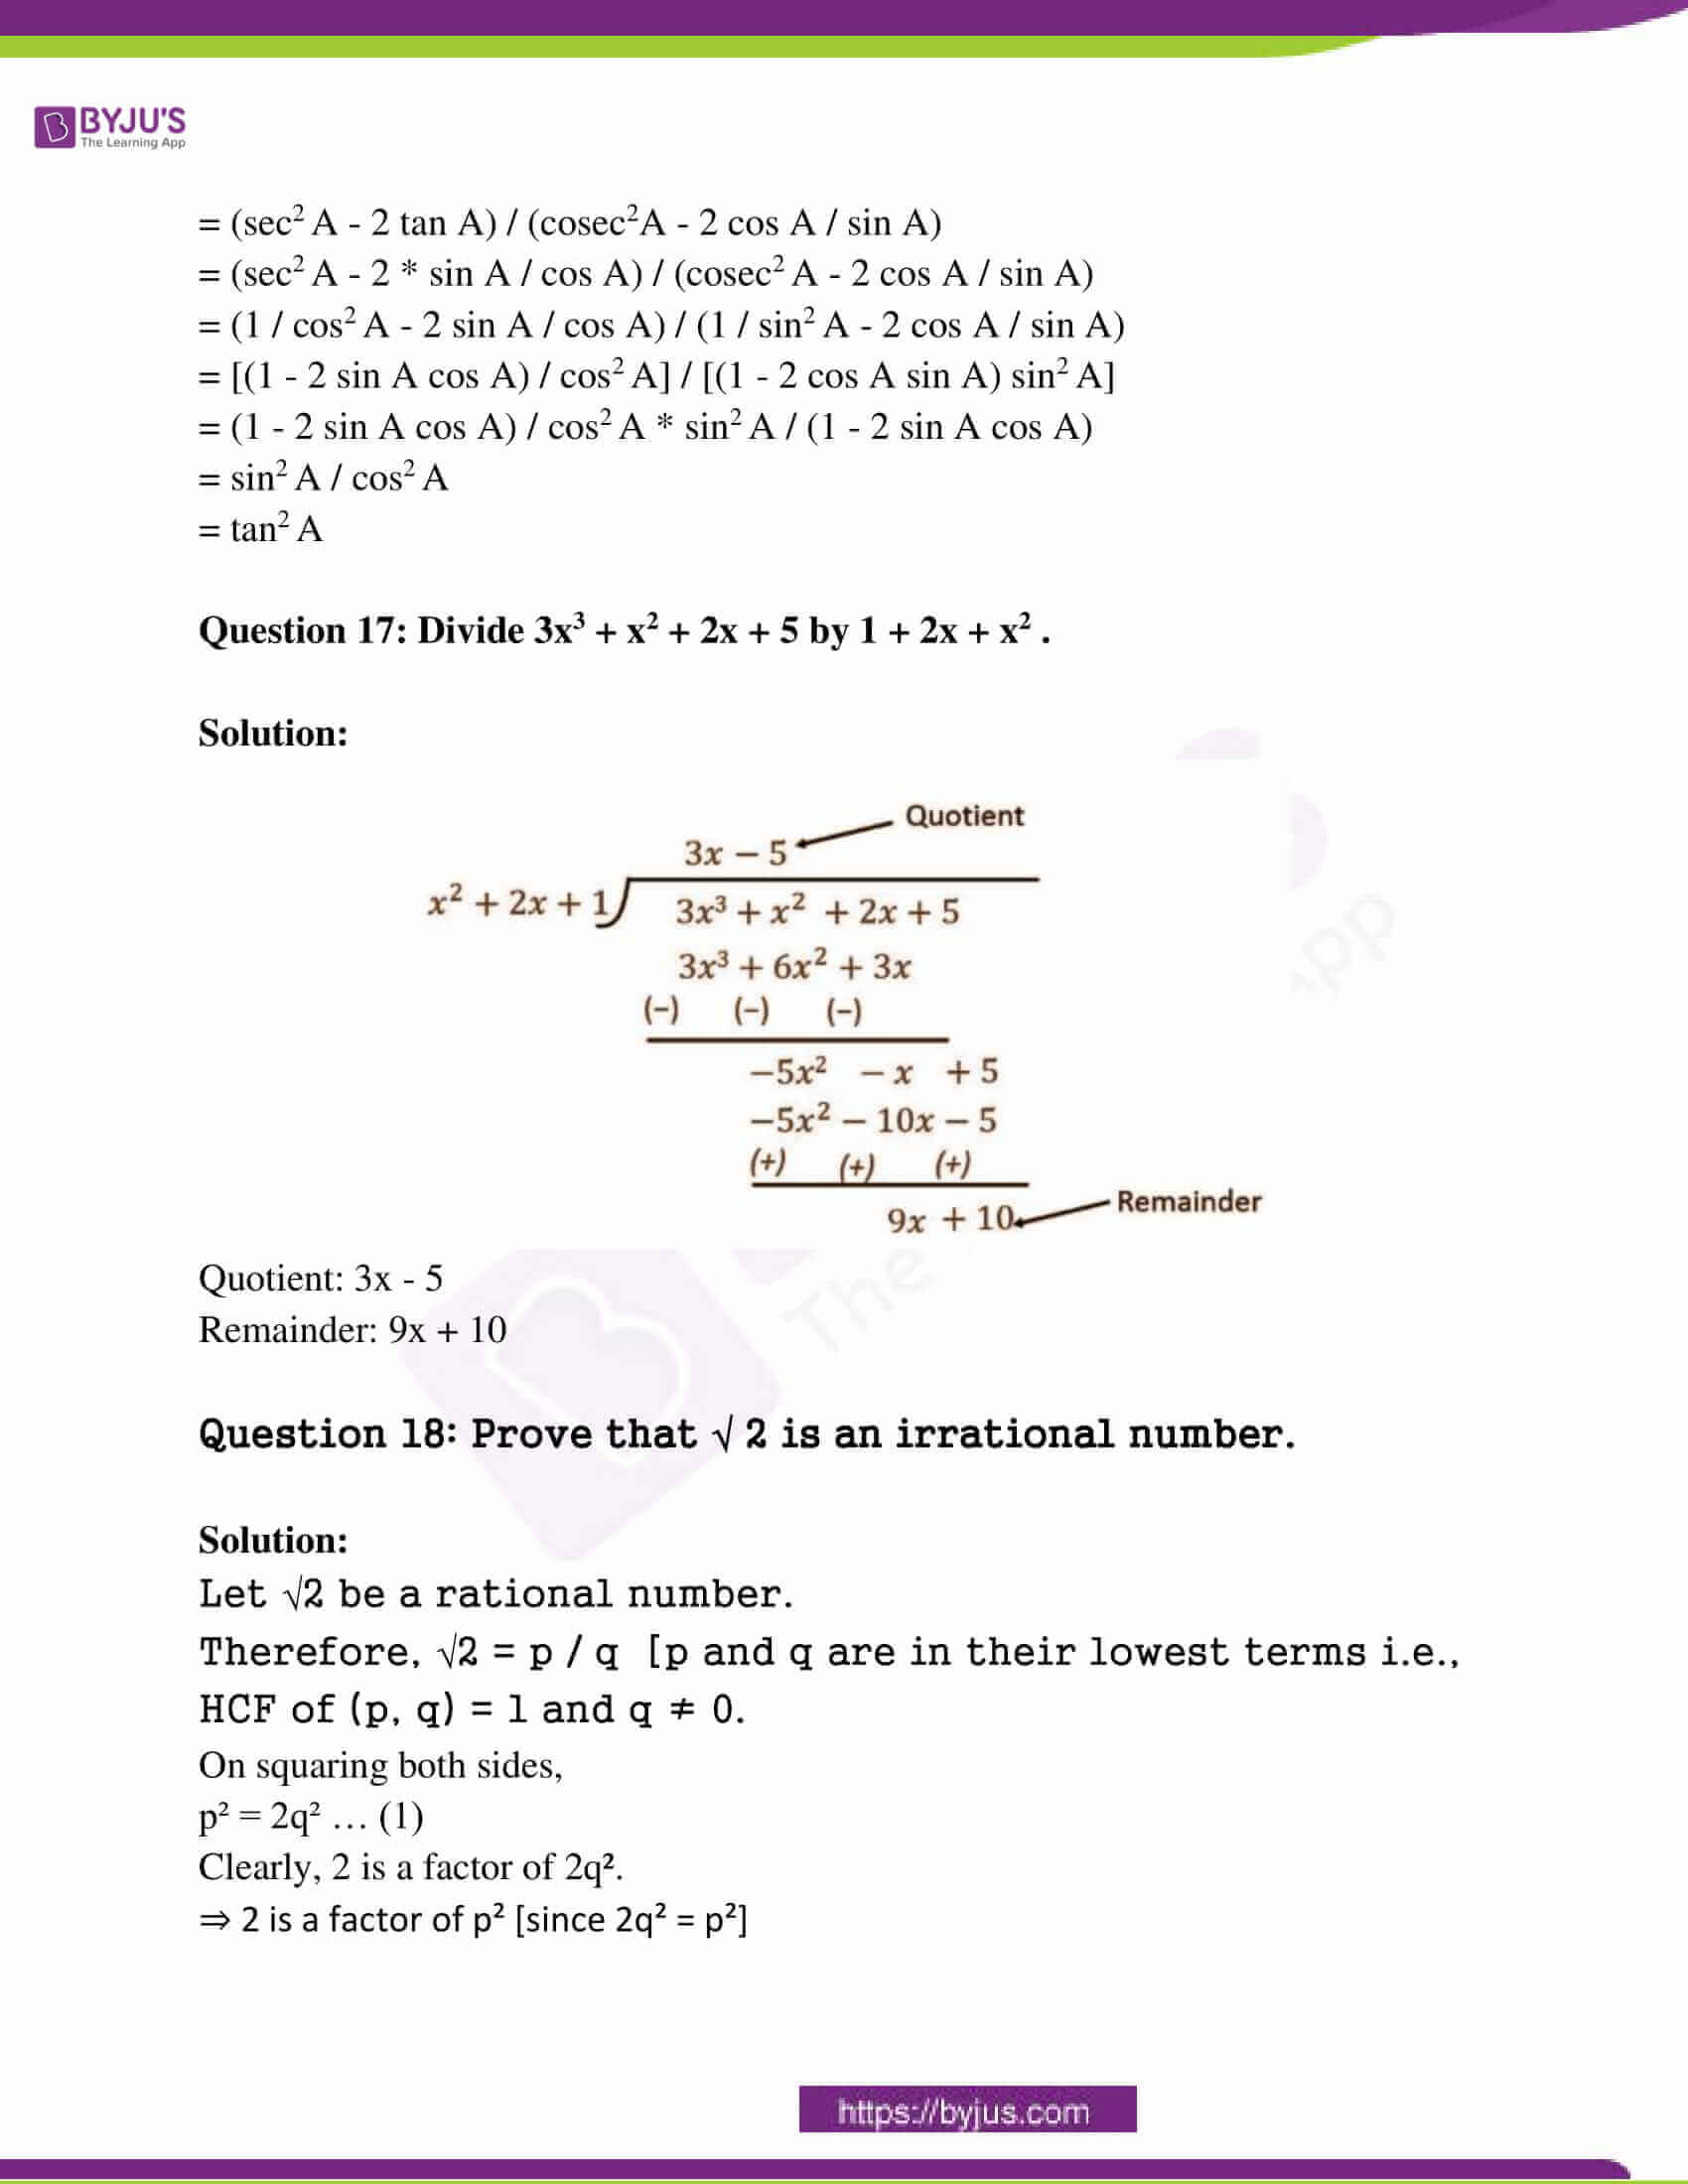 rajasthan board class 10 examination question paper sol march 2015 08